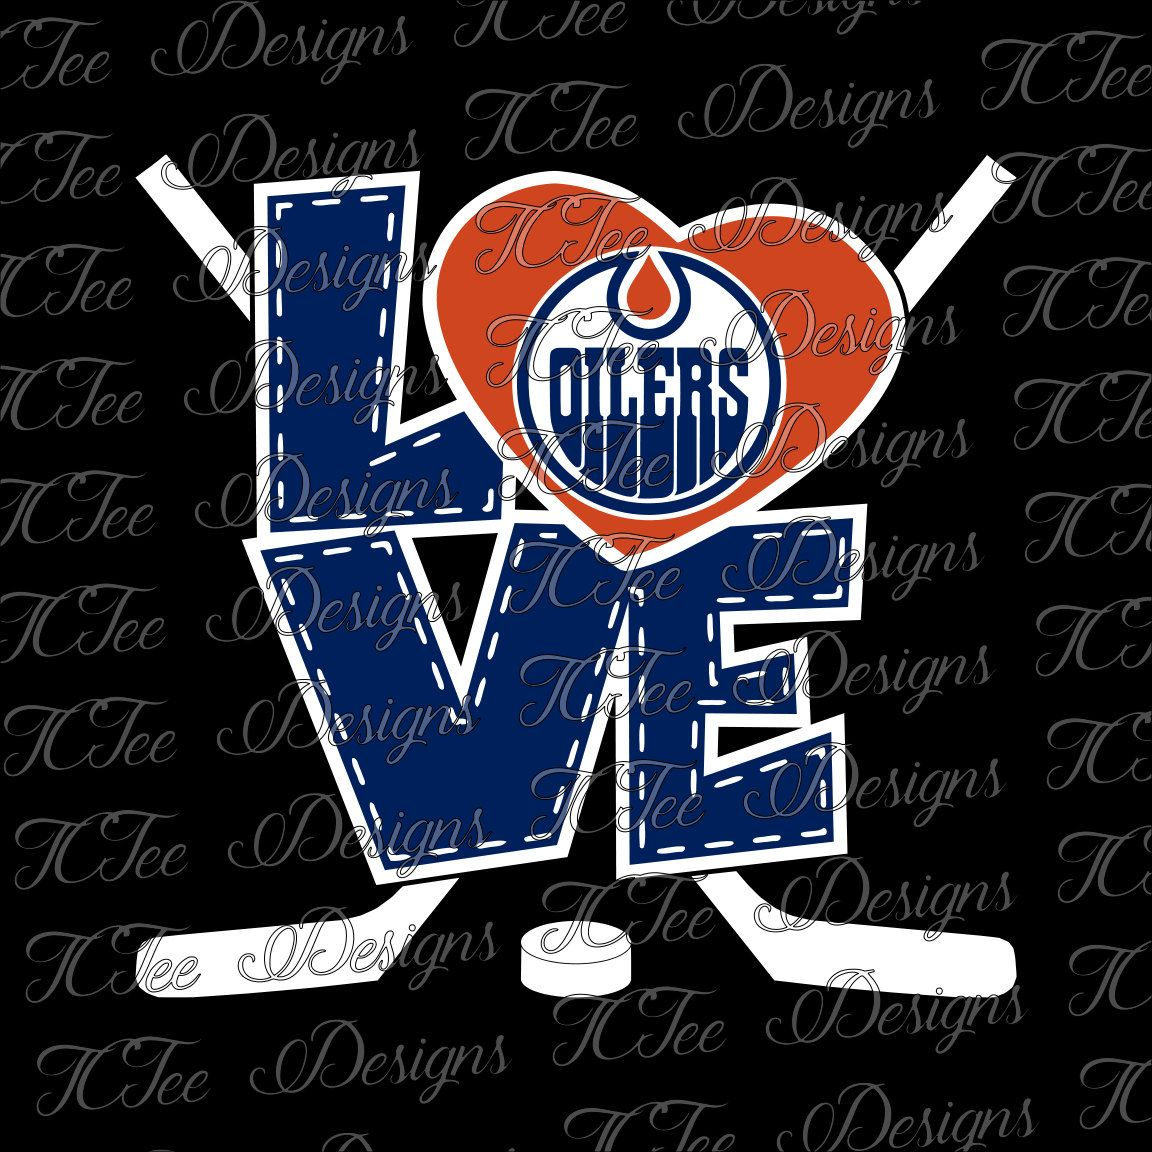 Love Edmonton Oilers - Hockey SVG File - Vector Design Download - Cut File by TCTeeDesigns on Etsy